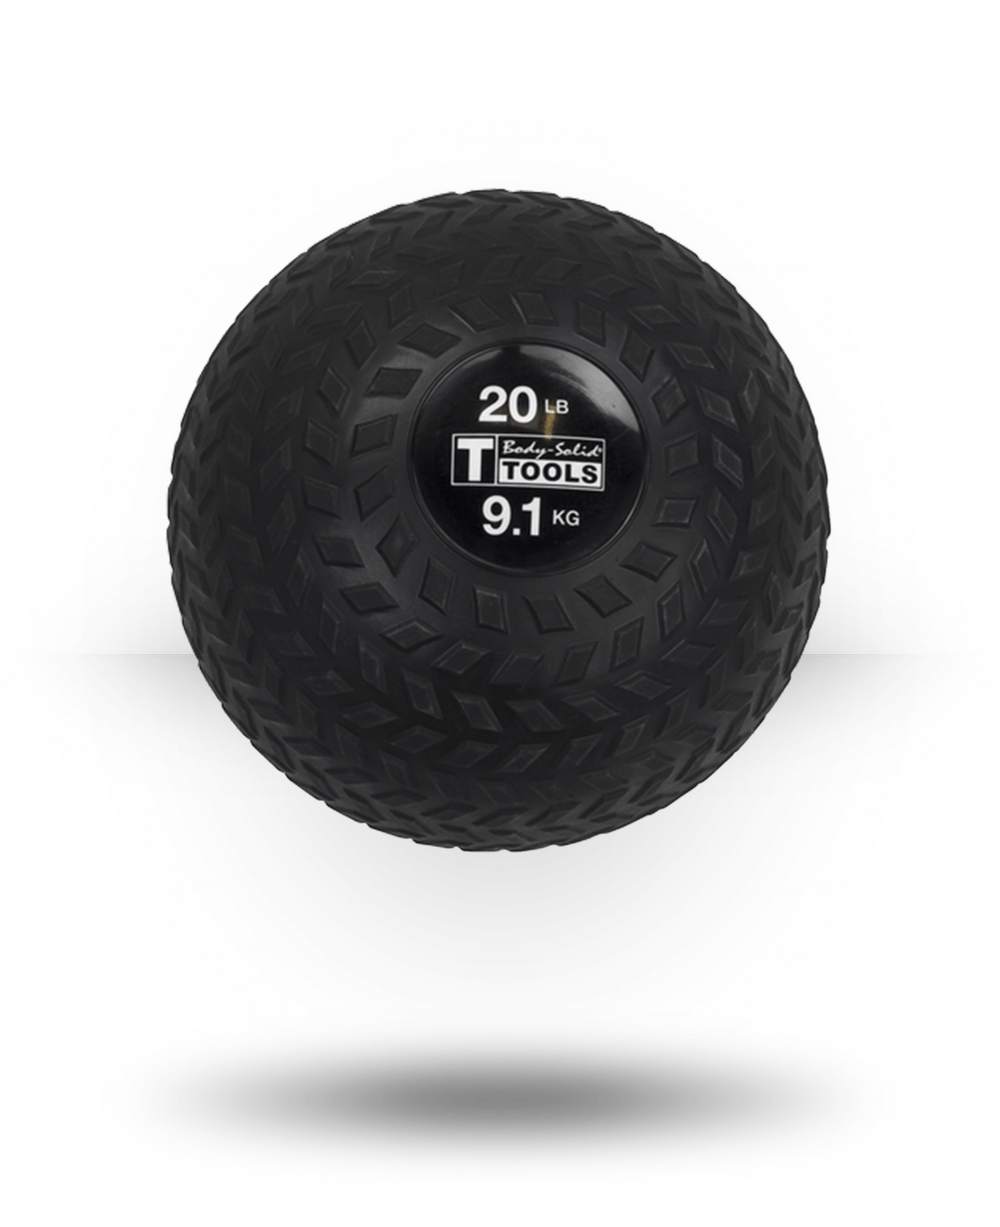 Body-Solid Tire Tread Slam Ball 20 lb